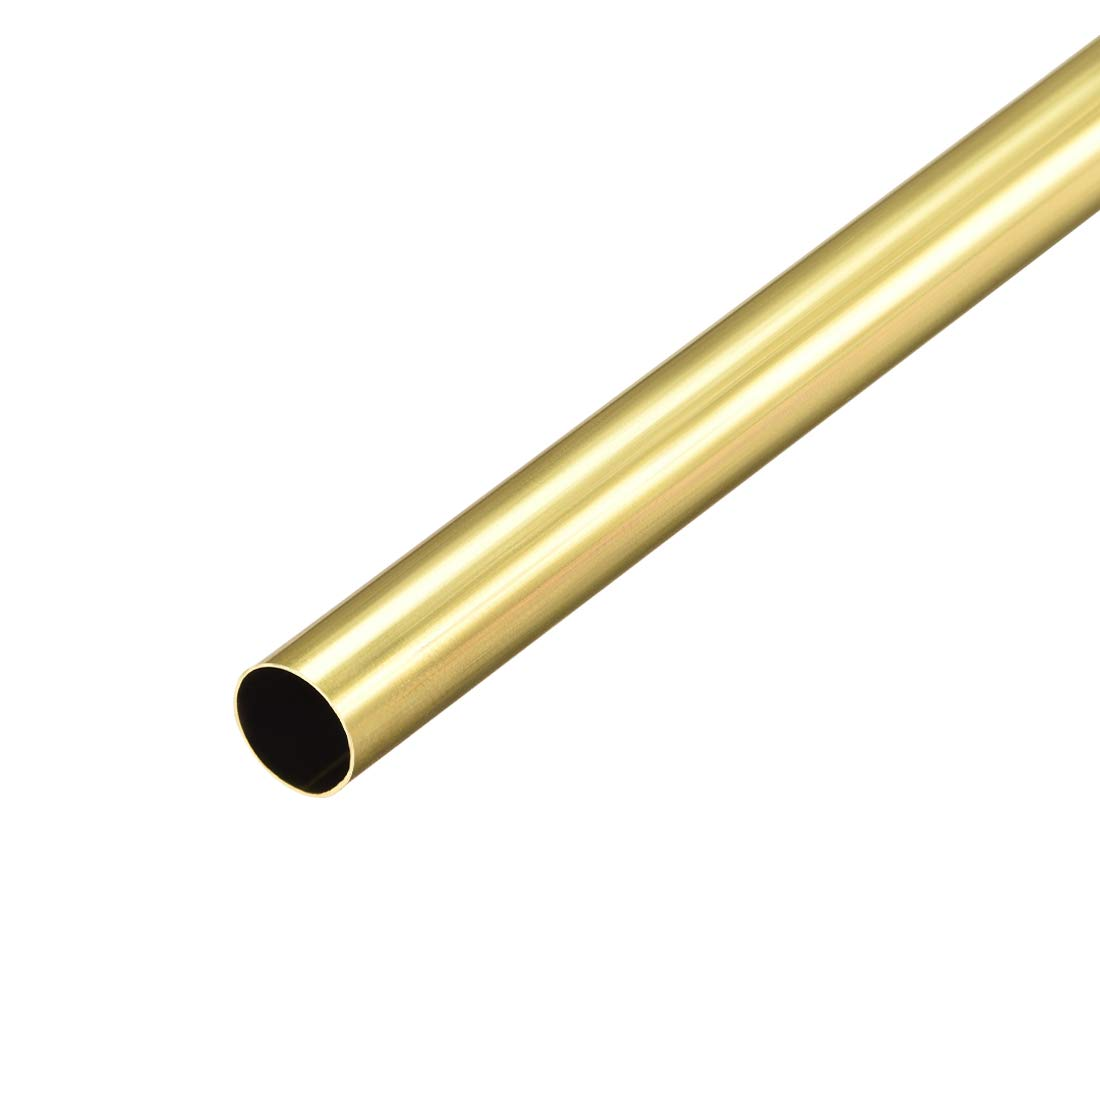 uxcell Brass Round Tube, 300mm Length 8mm OD 0.2mm Wall Thickness, Seamless Straight Pipe Tubing